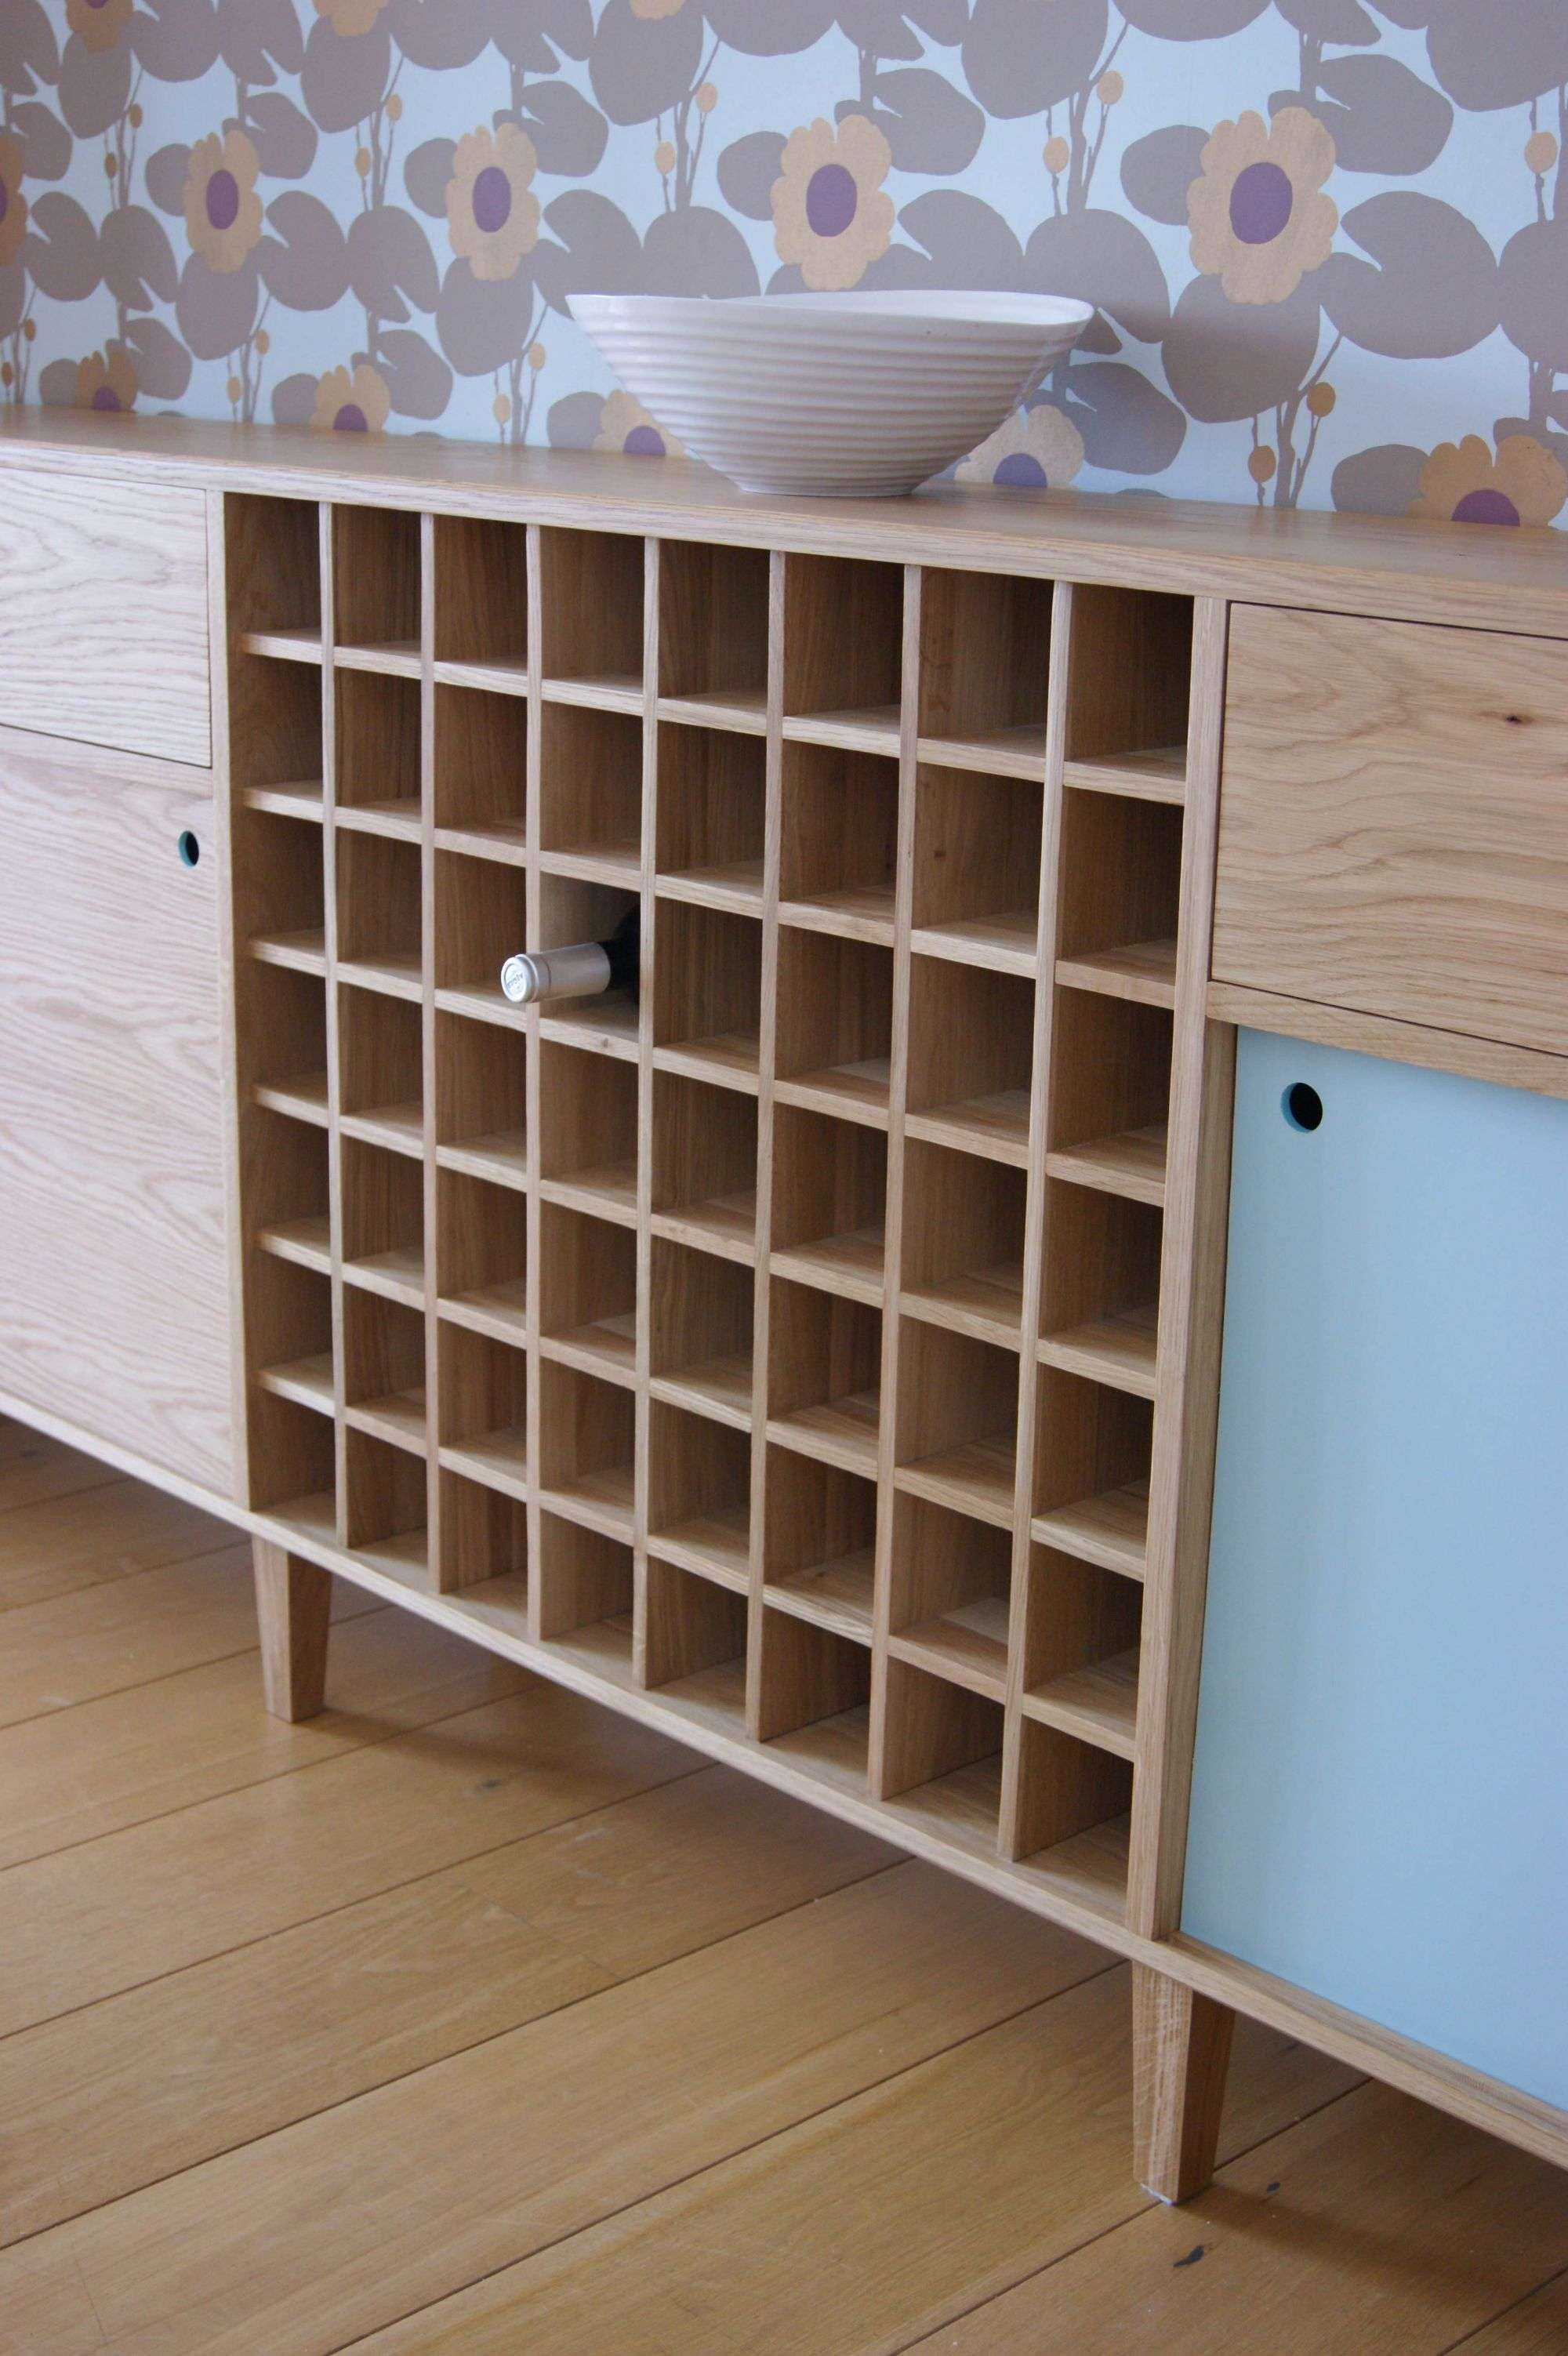 Oak Sideboard With Wine Rack – Mijmoj For Sideboards With Wine Rack (View 20 of 20)